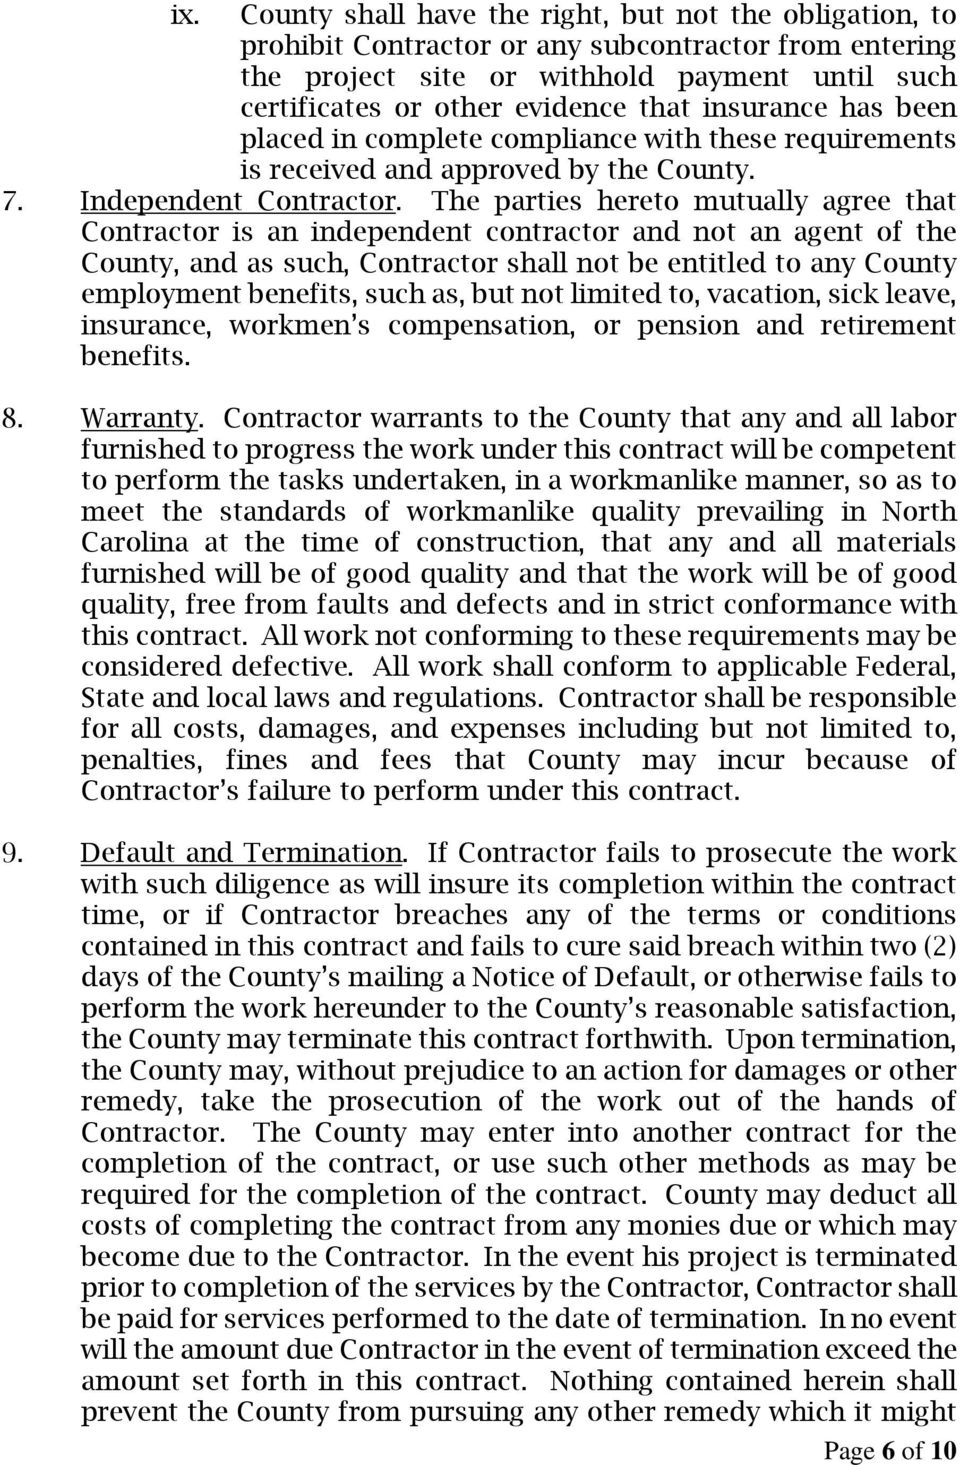 The parties hereto mutually agree that Contractor is an independent contractor and not an agent of the County, and as such, Contractor shall not be entitled to any County employment benefits, such